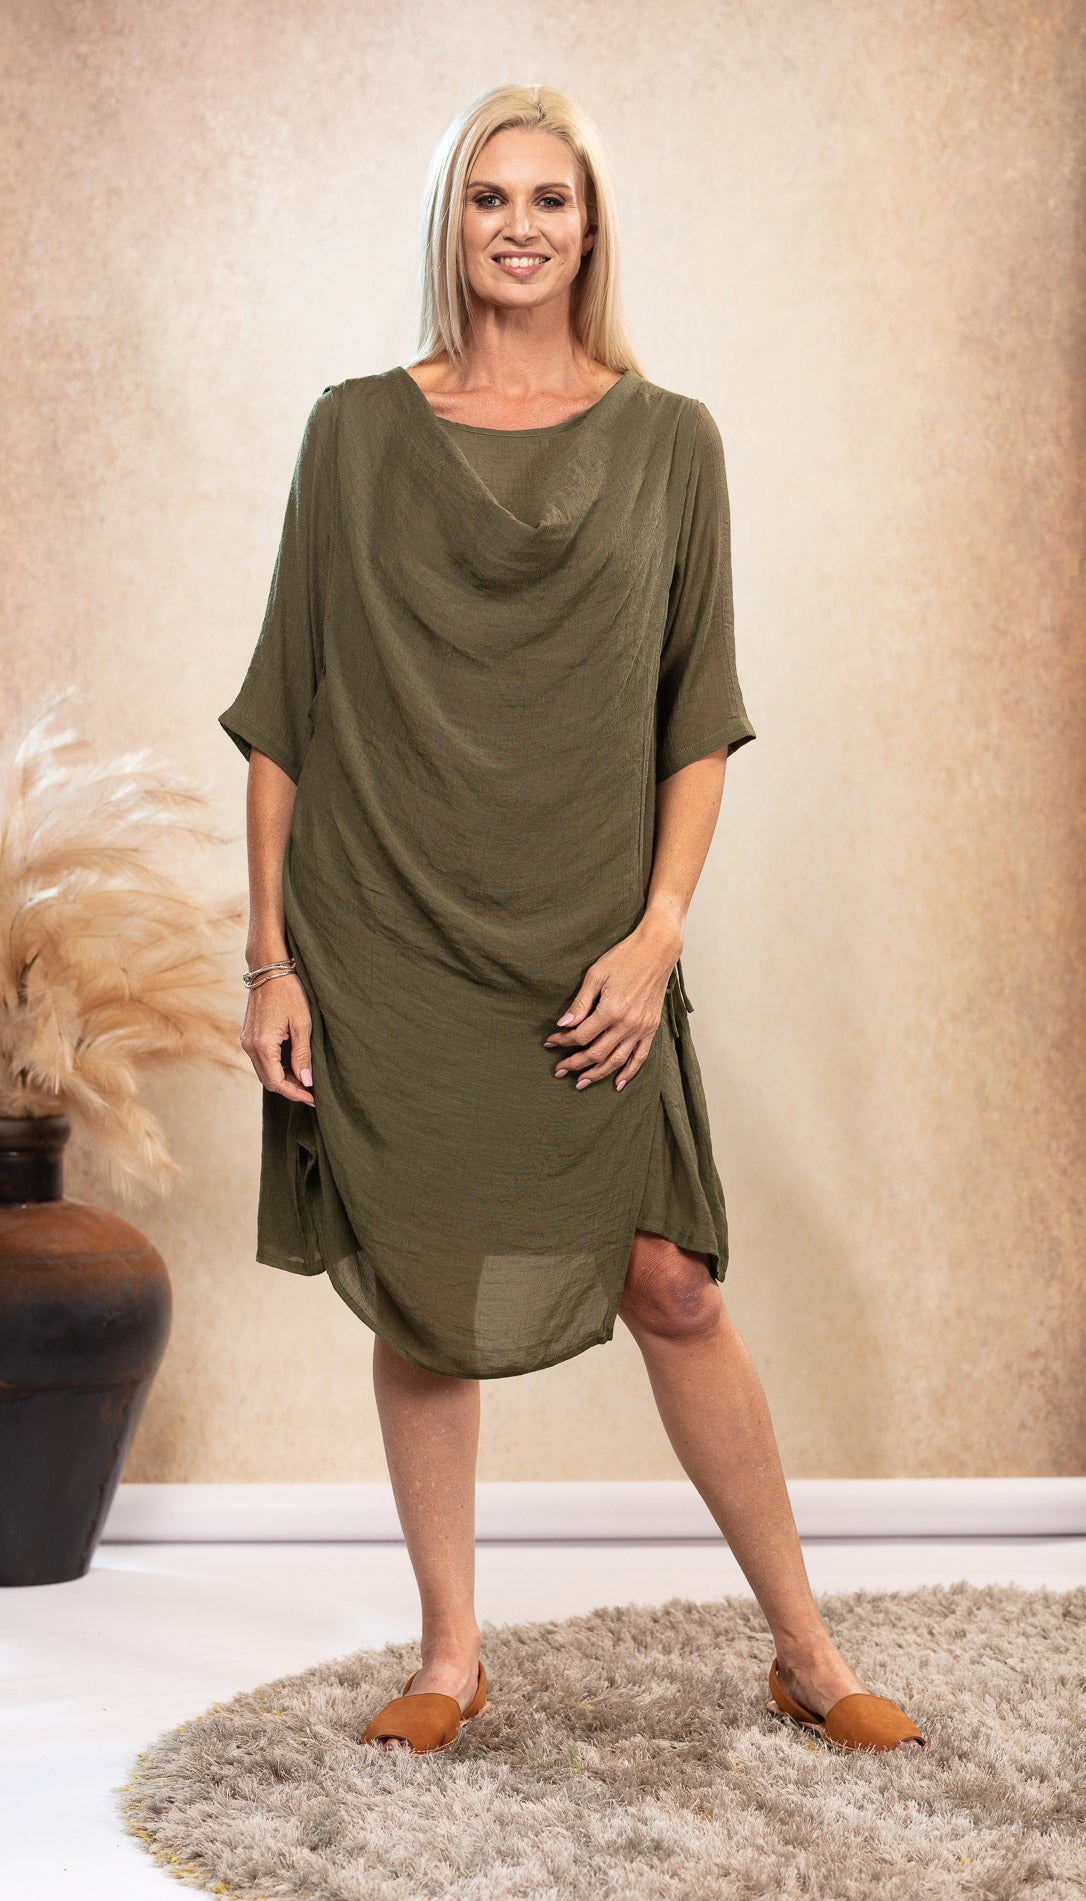 Bamboo Aphrodite Dress in earthy Olive Green. Bamboo Dress with sleeves.Tan Avarca sandals.